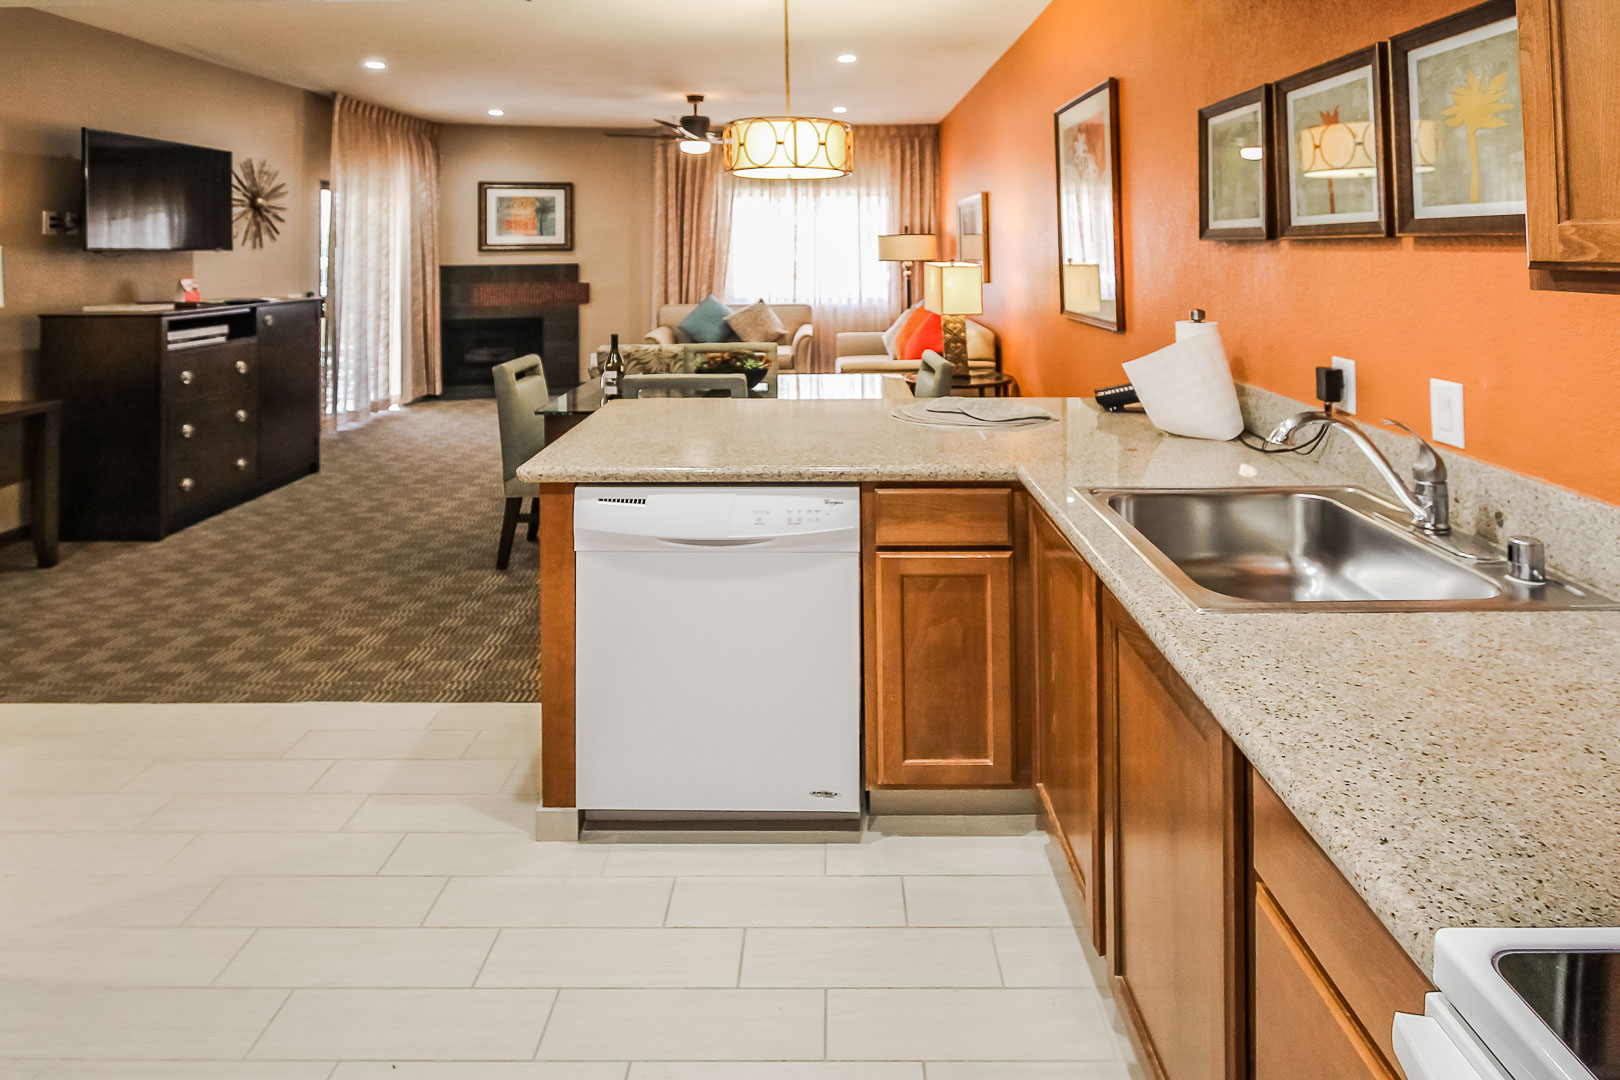 An expansive kitchen and dining area unit at VRI's Desert Isle Resort in California.